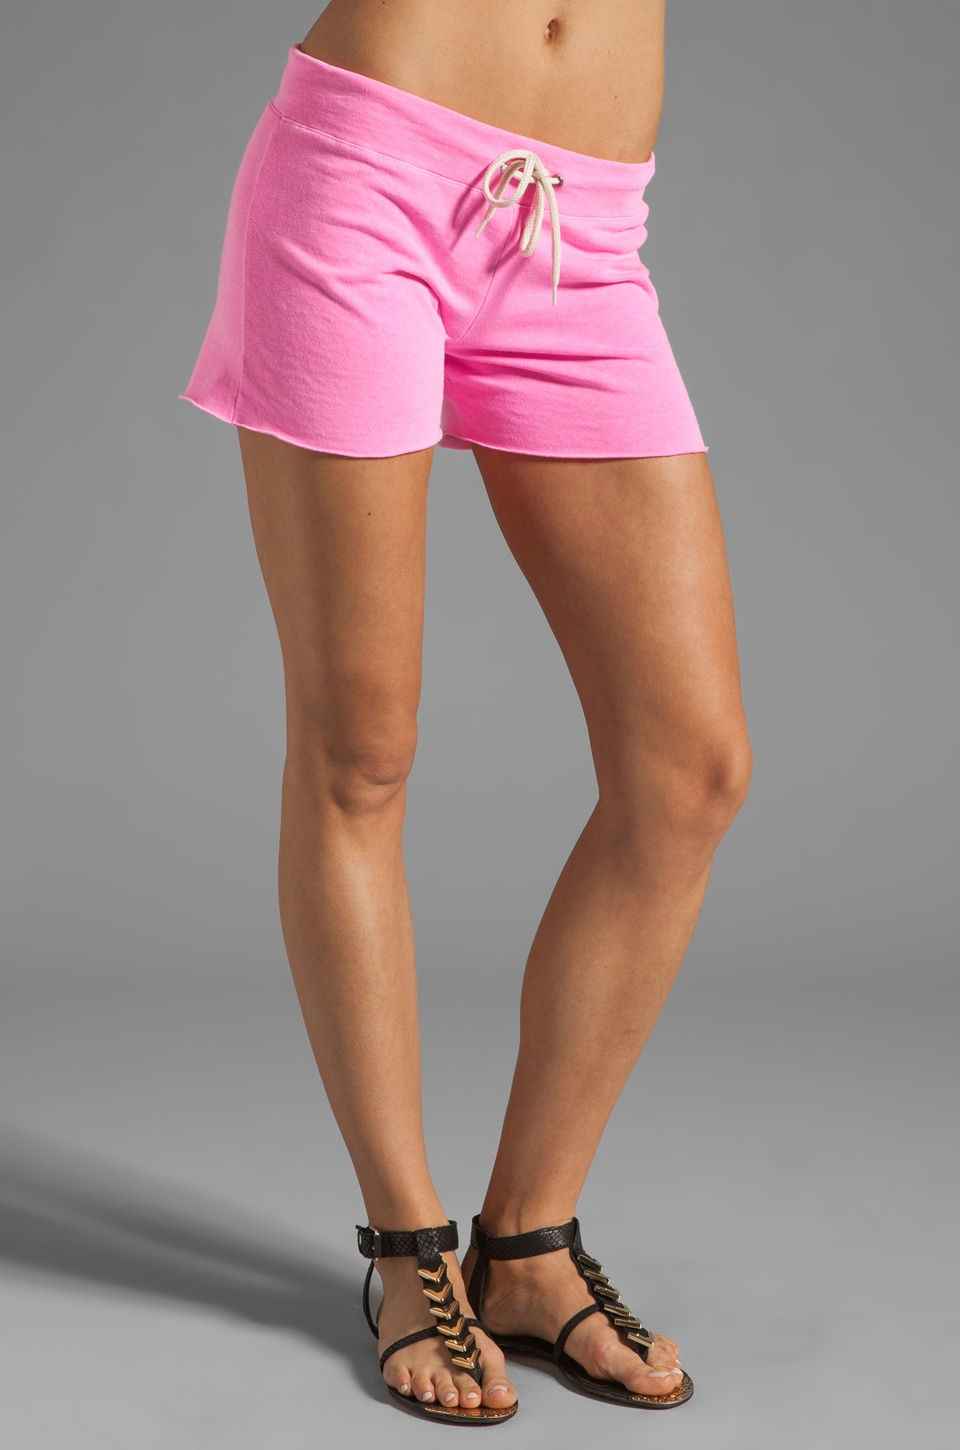 MONROW Vintage Shorts in Neon Pink